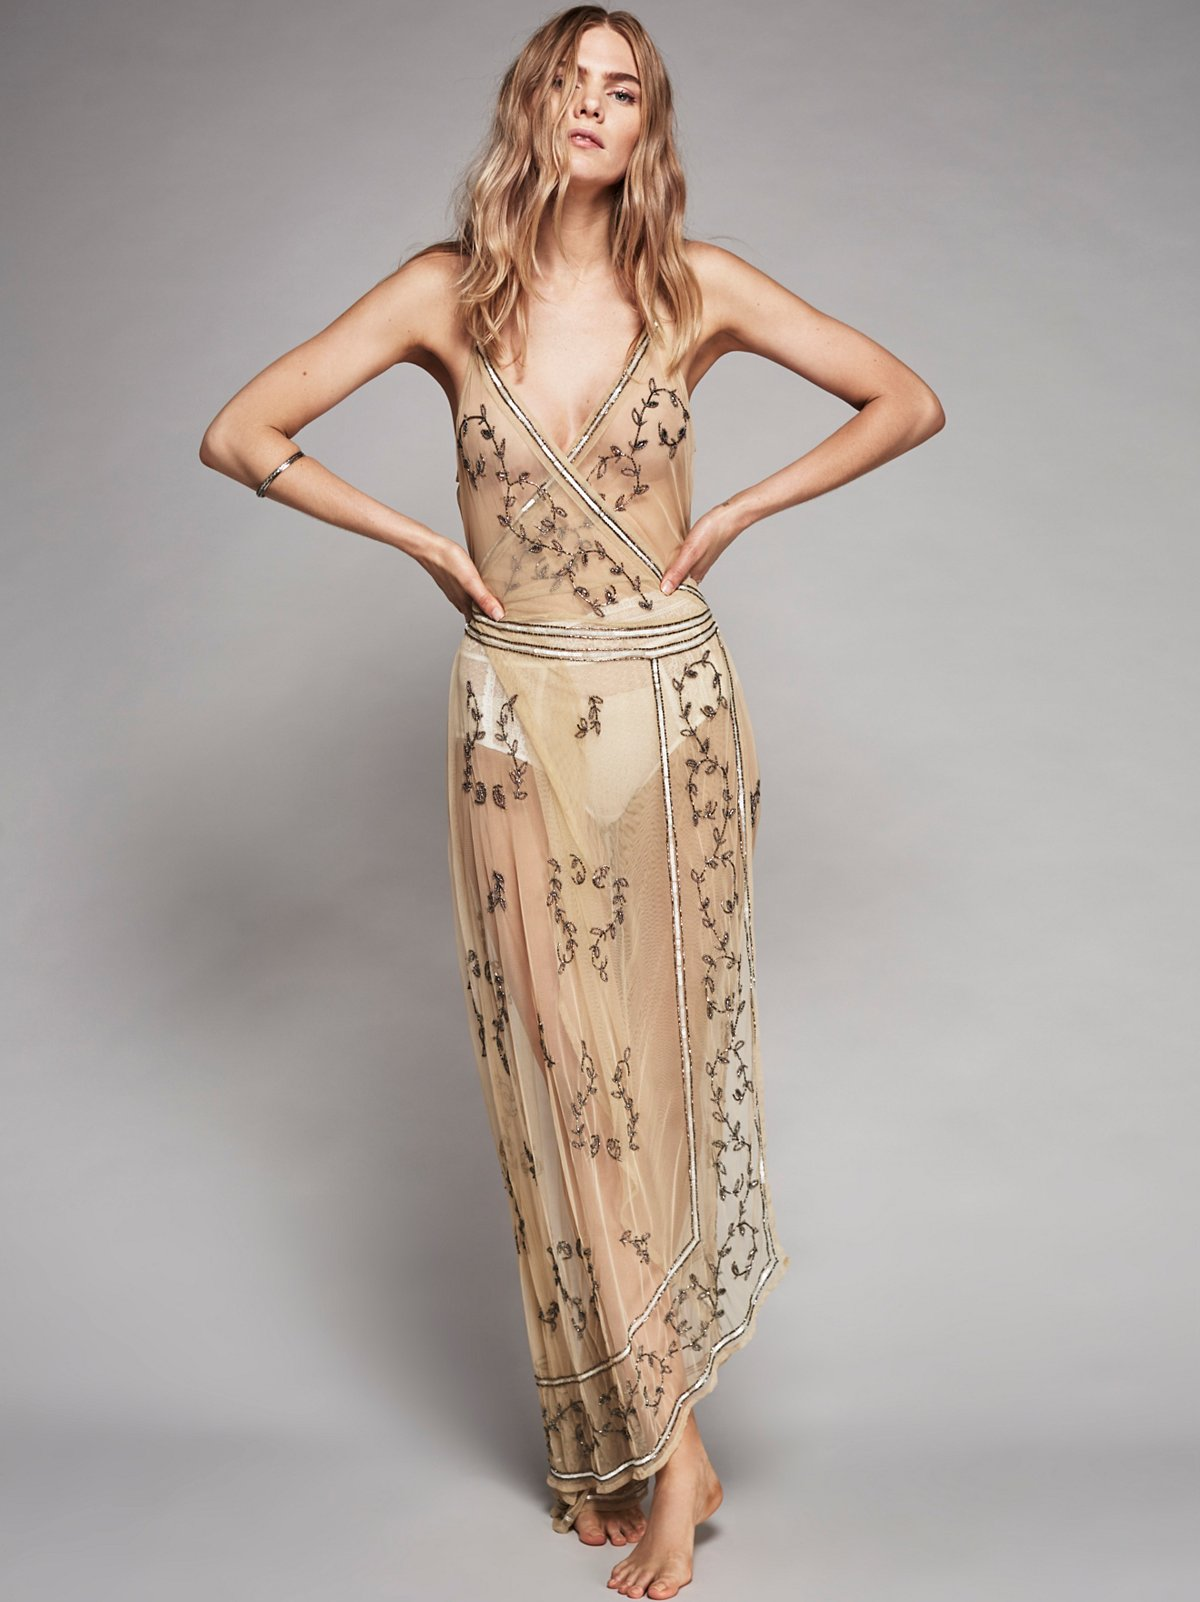 Sky Fall Embellished Maxi